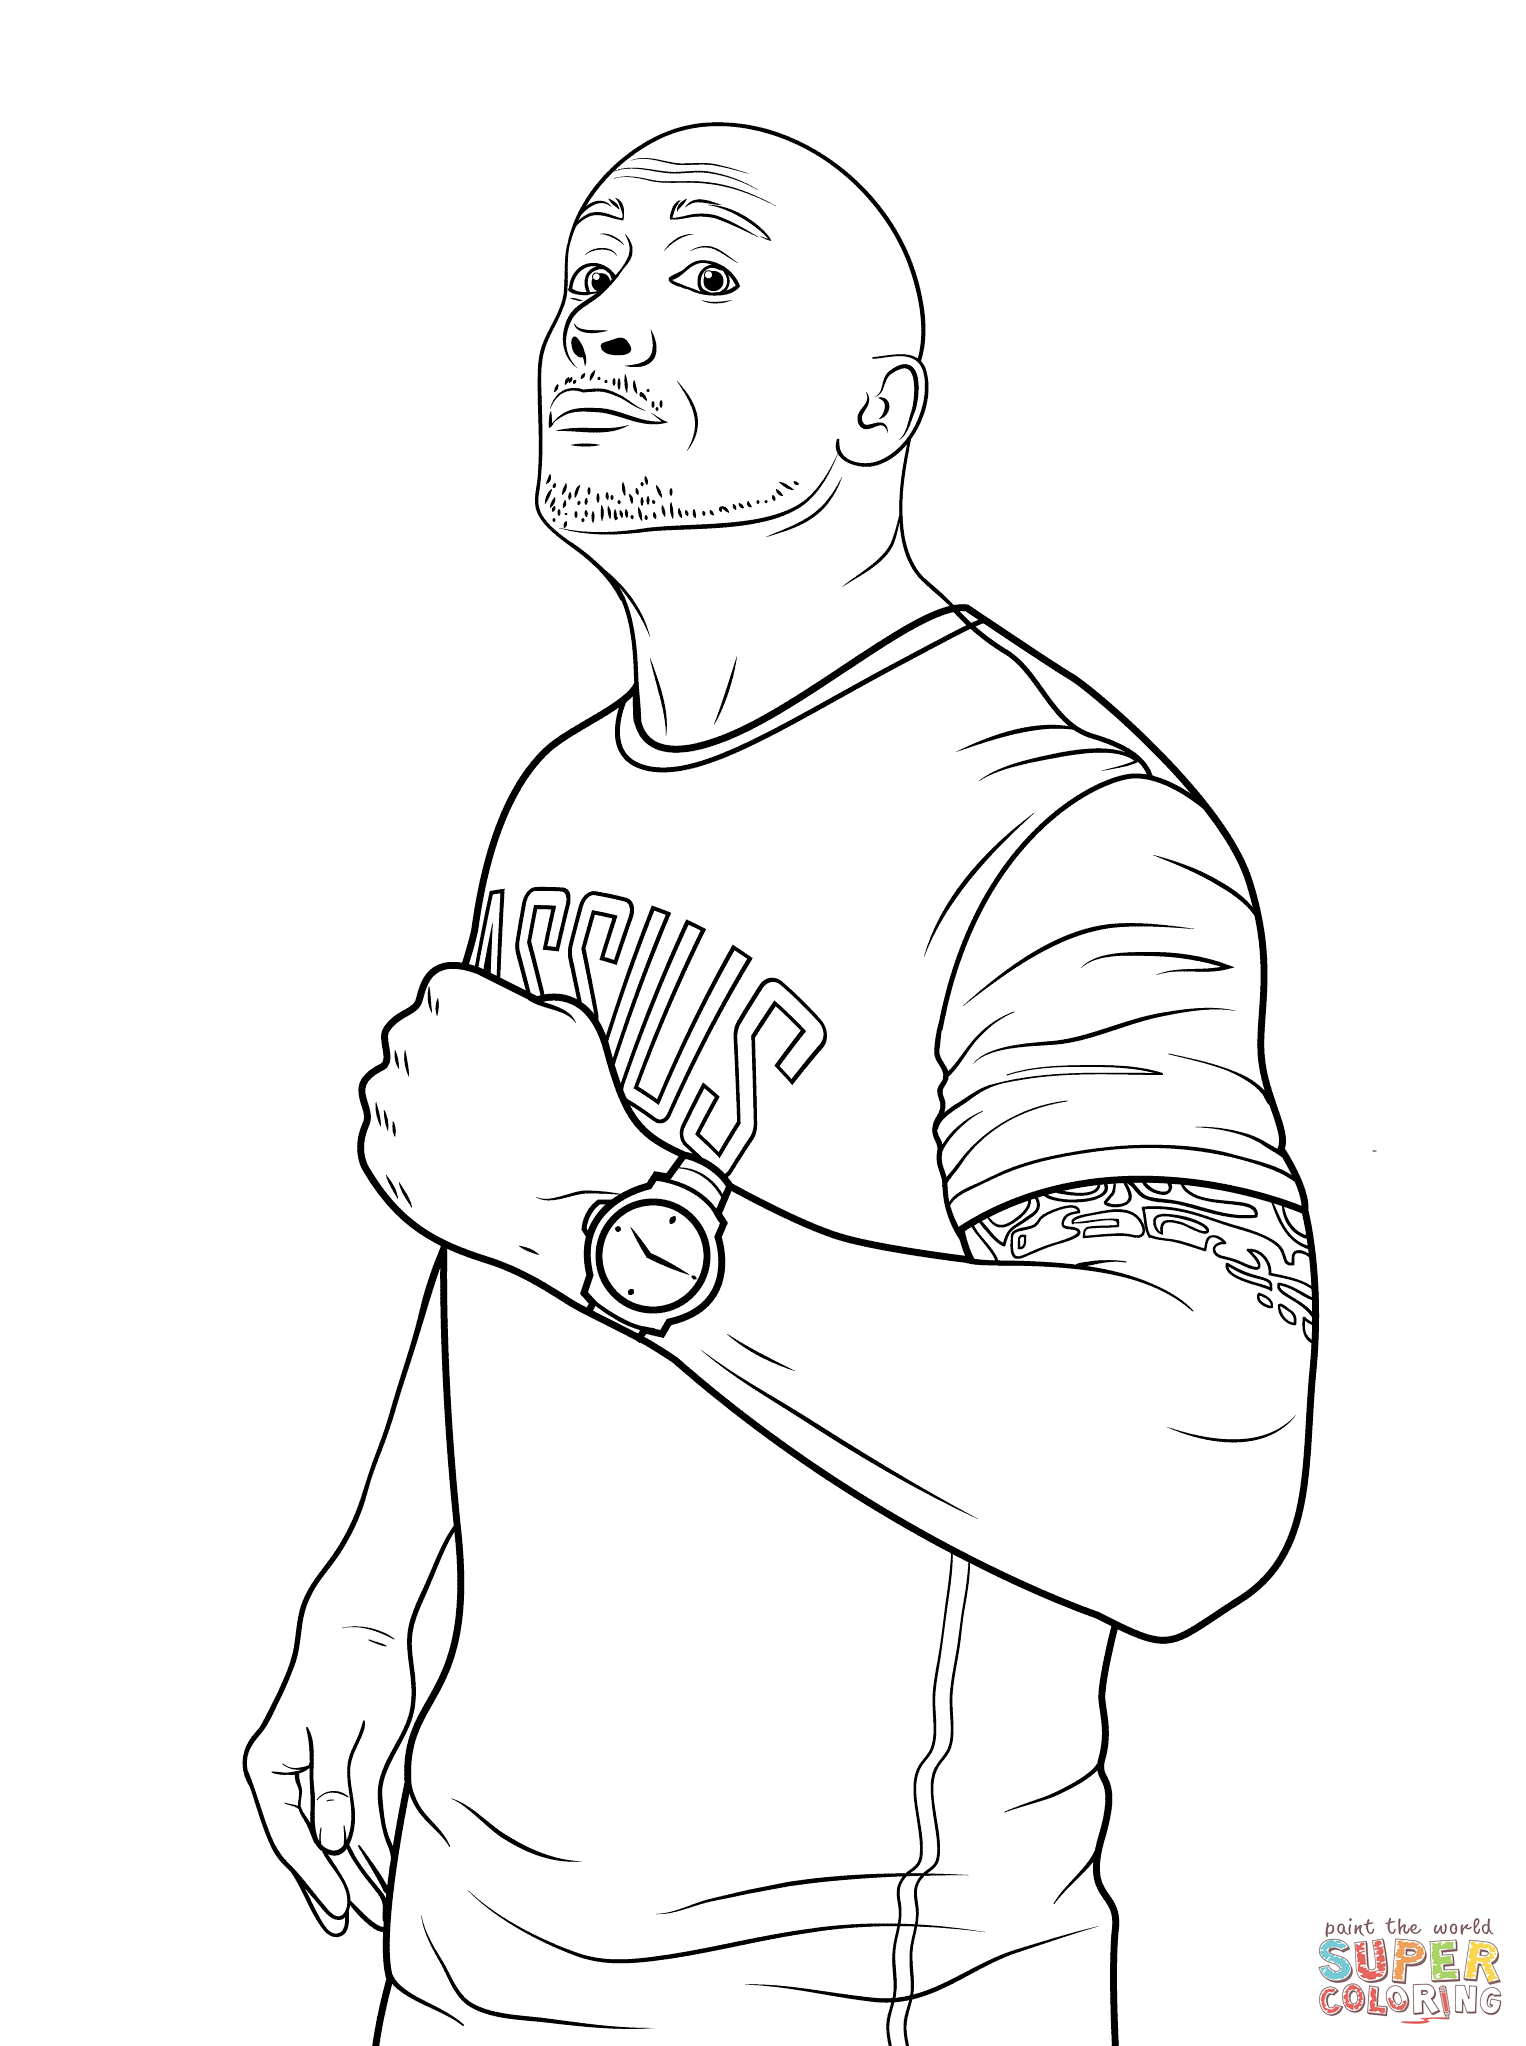 Wwe Dwayne The Rock Johnson Coloring Page